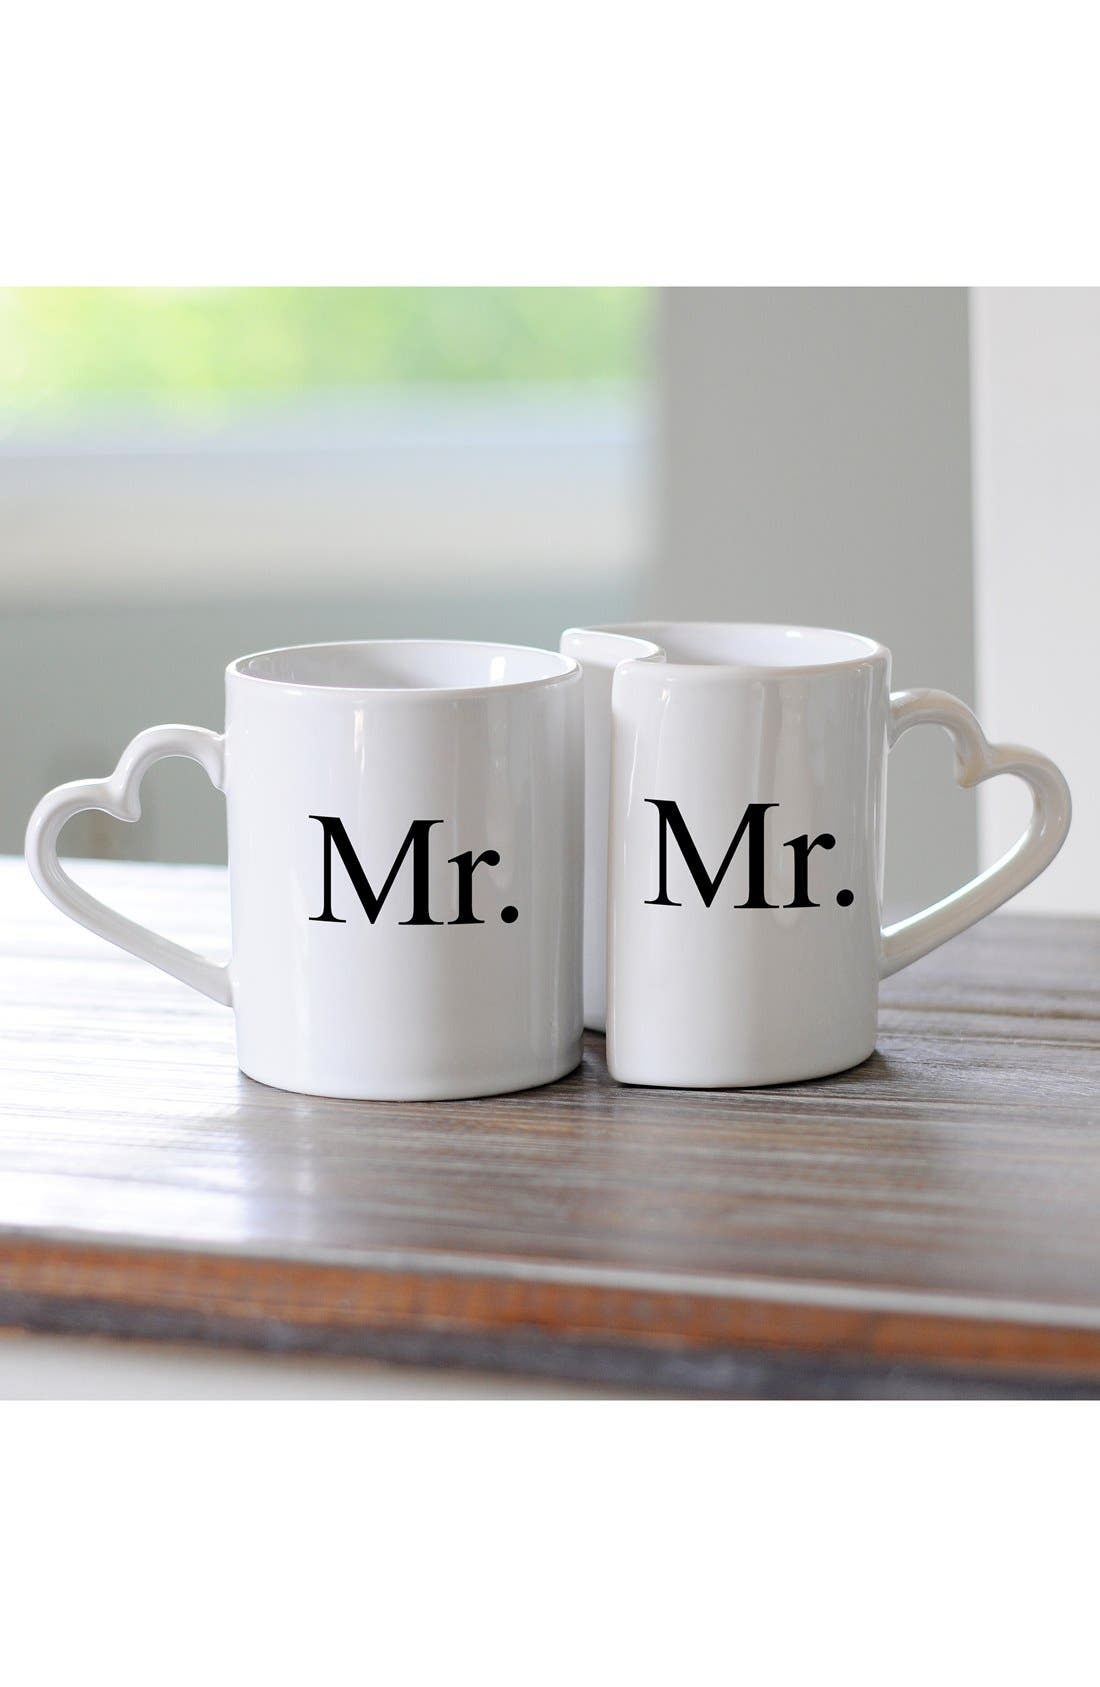 'For the Couple' Ceramic Coffee Mugs,                             Main thumbnail 1, color,                             Mr/ Mr